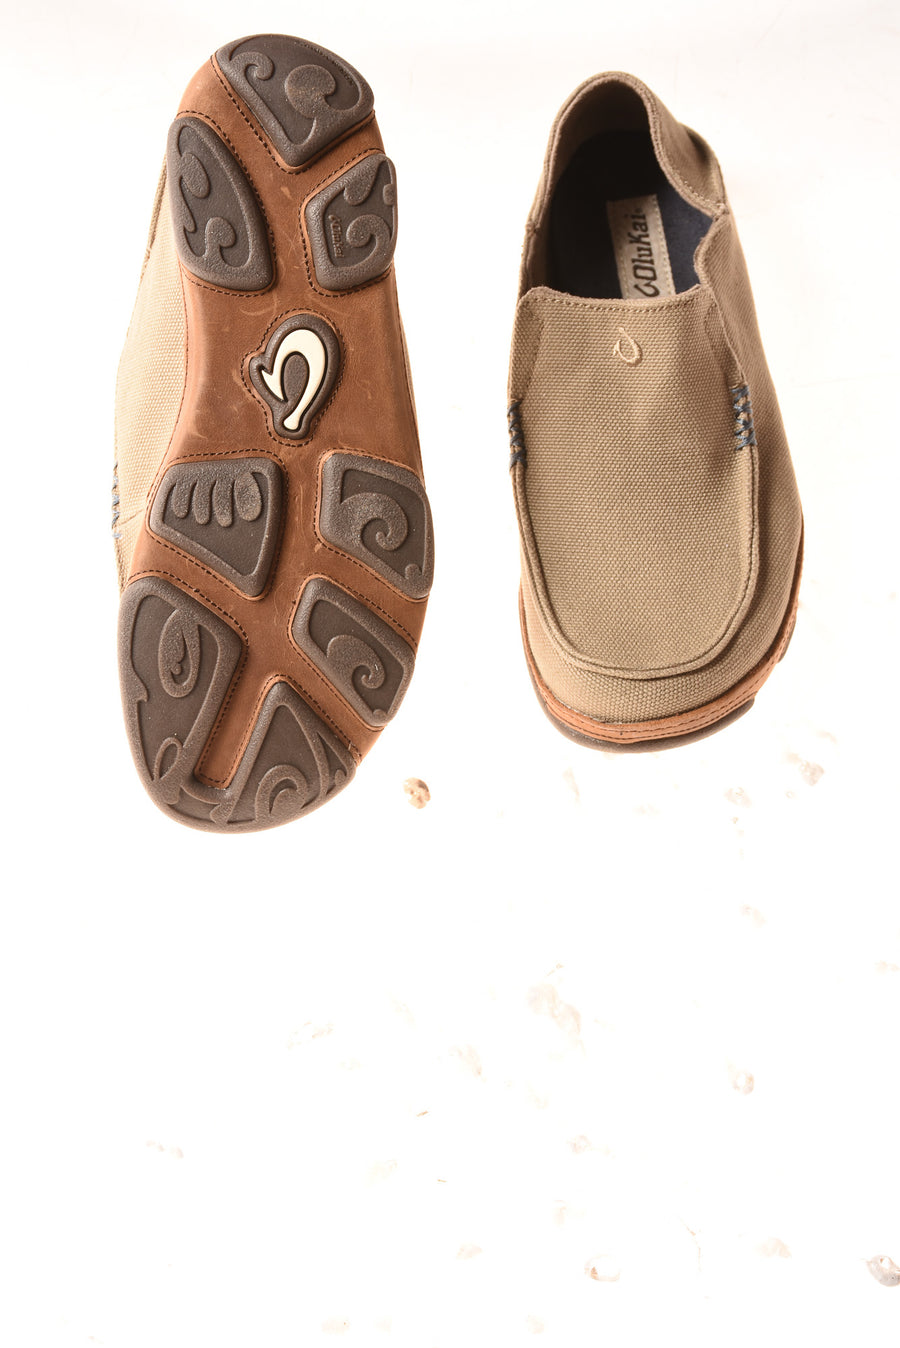 USED Olukai Men's Shoes 8 Light Brown